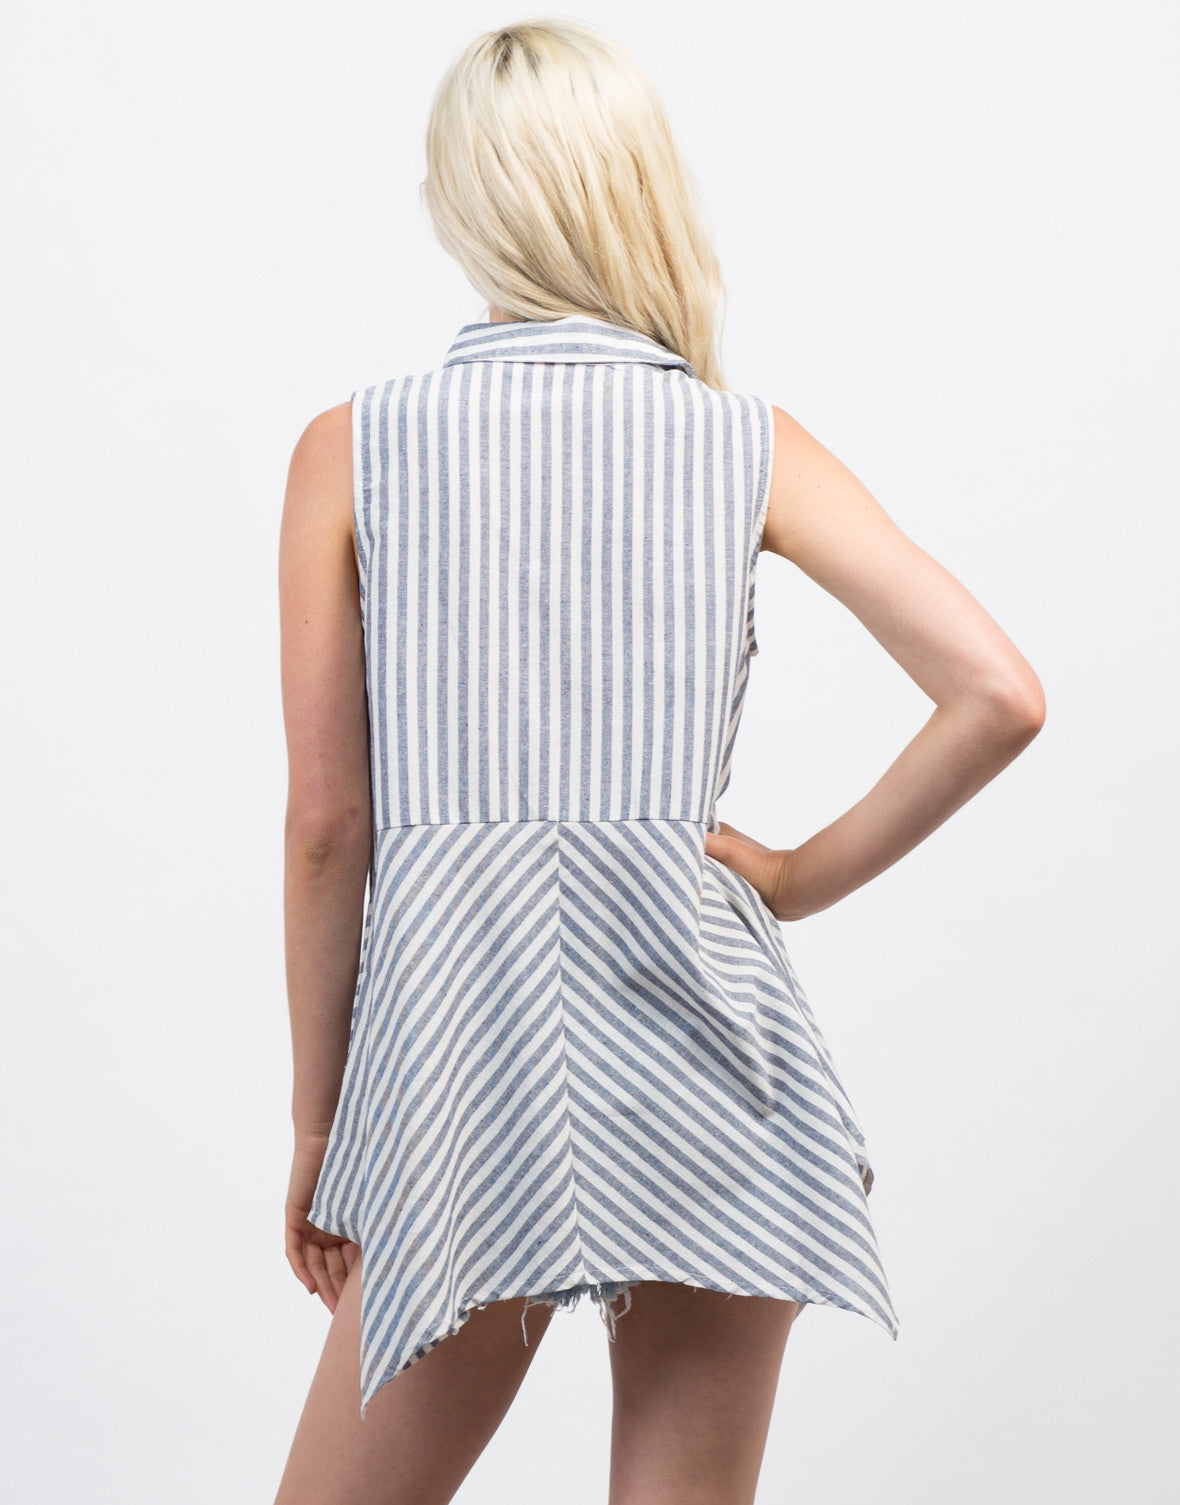 Back View of Flowy Linen Striped Tank